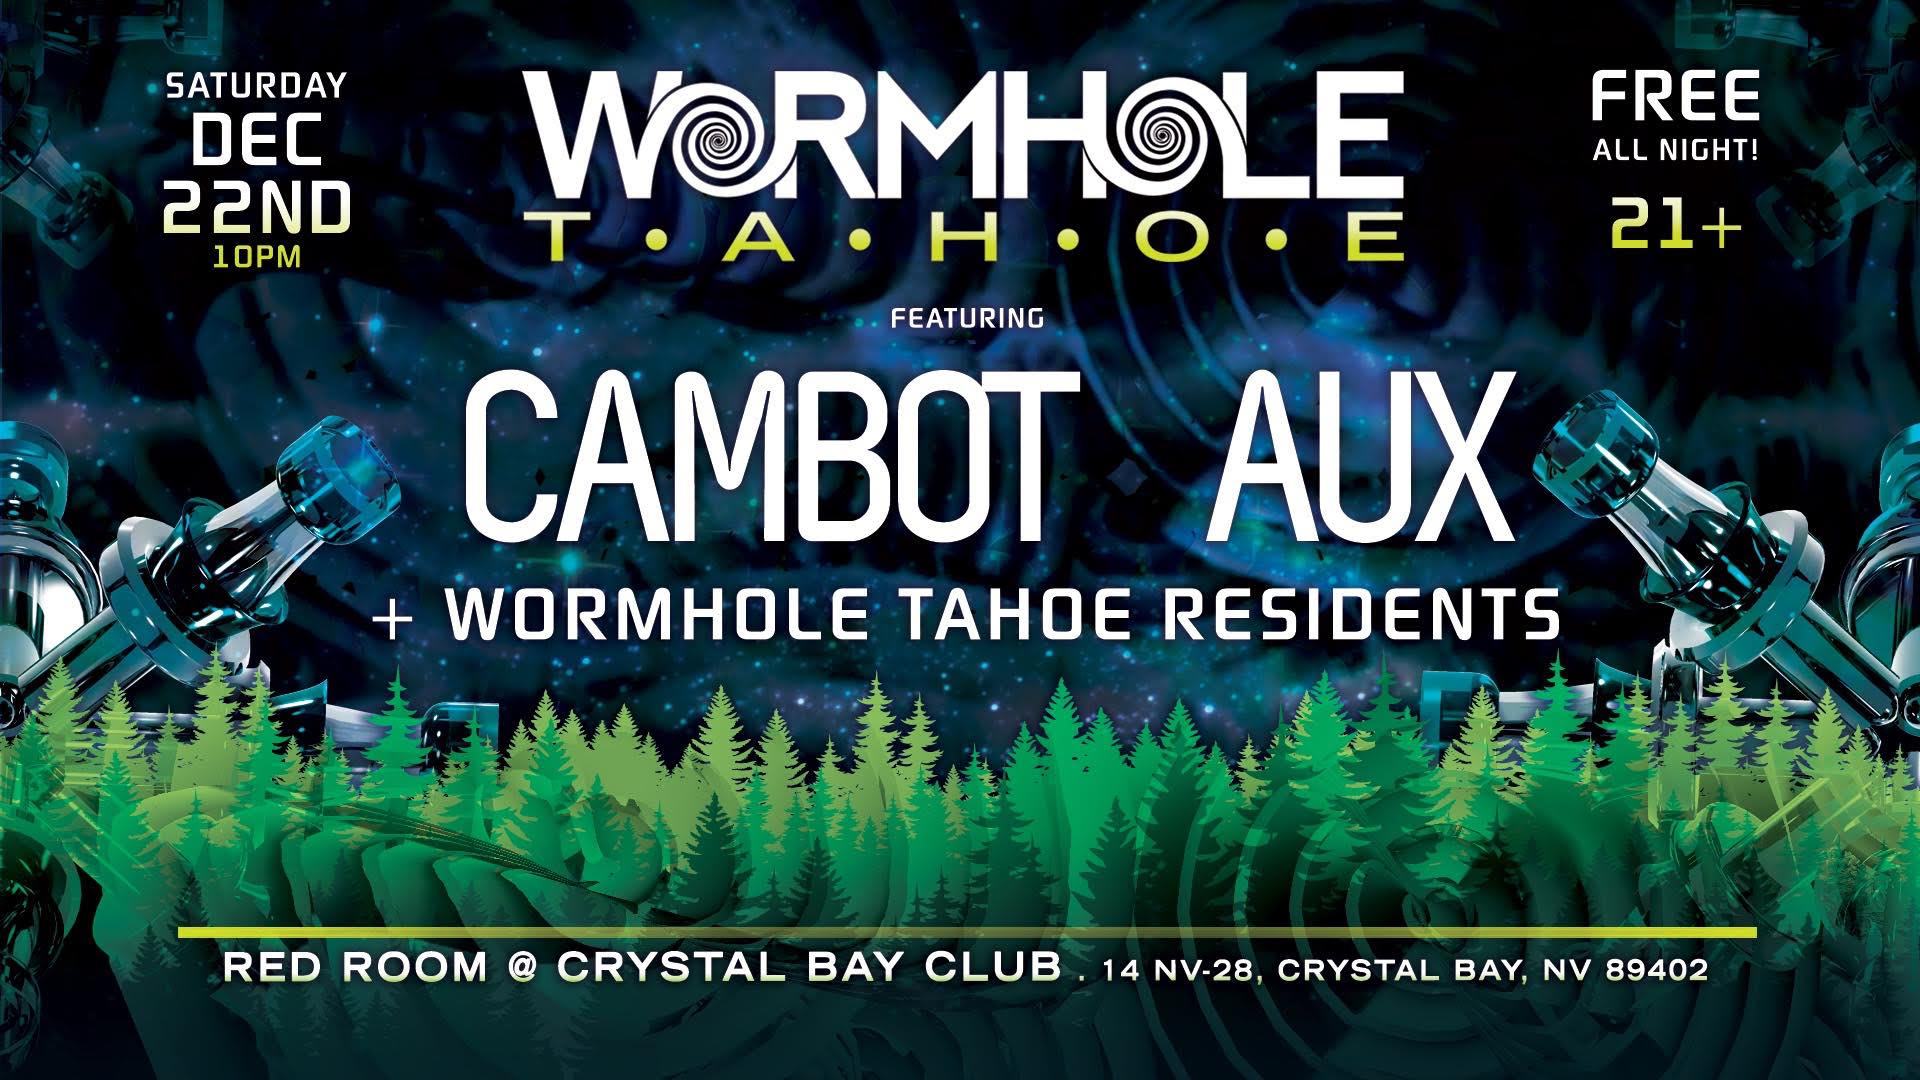 Wormhole Dec. 22